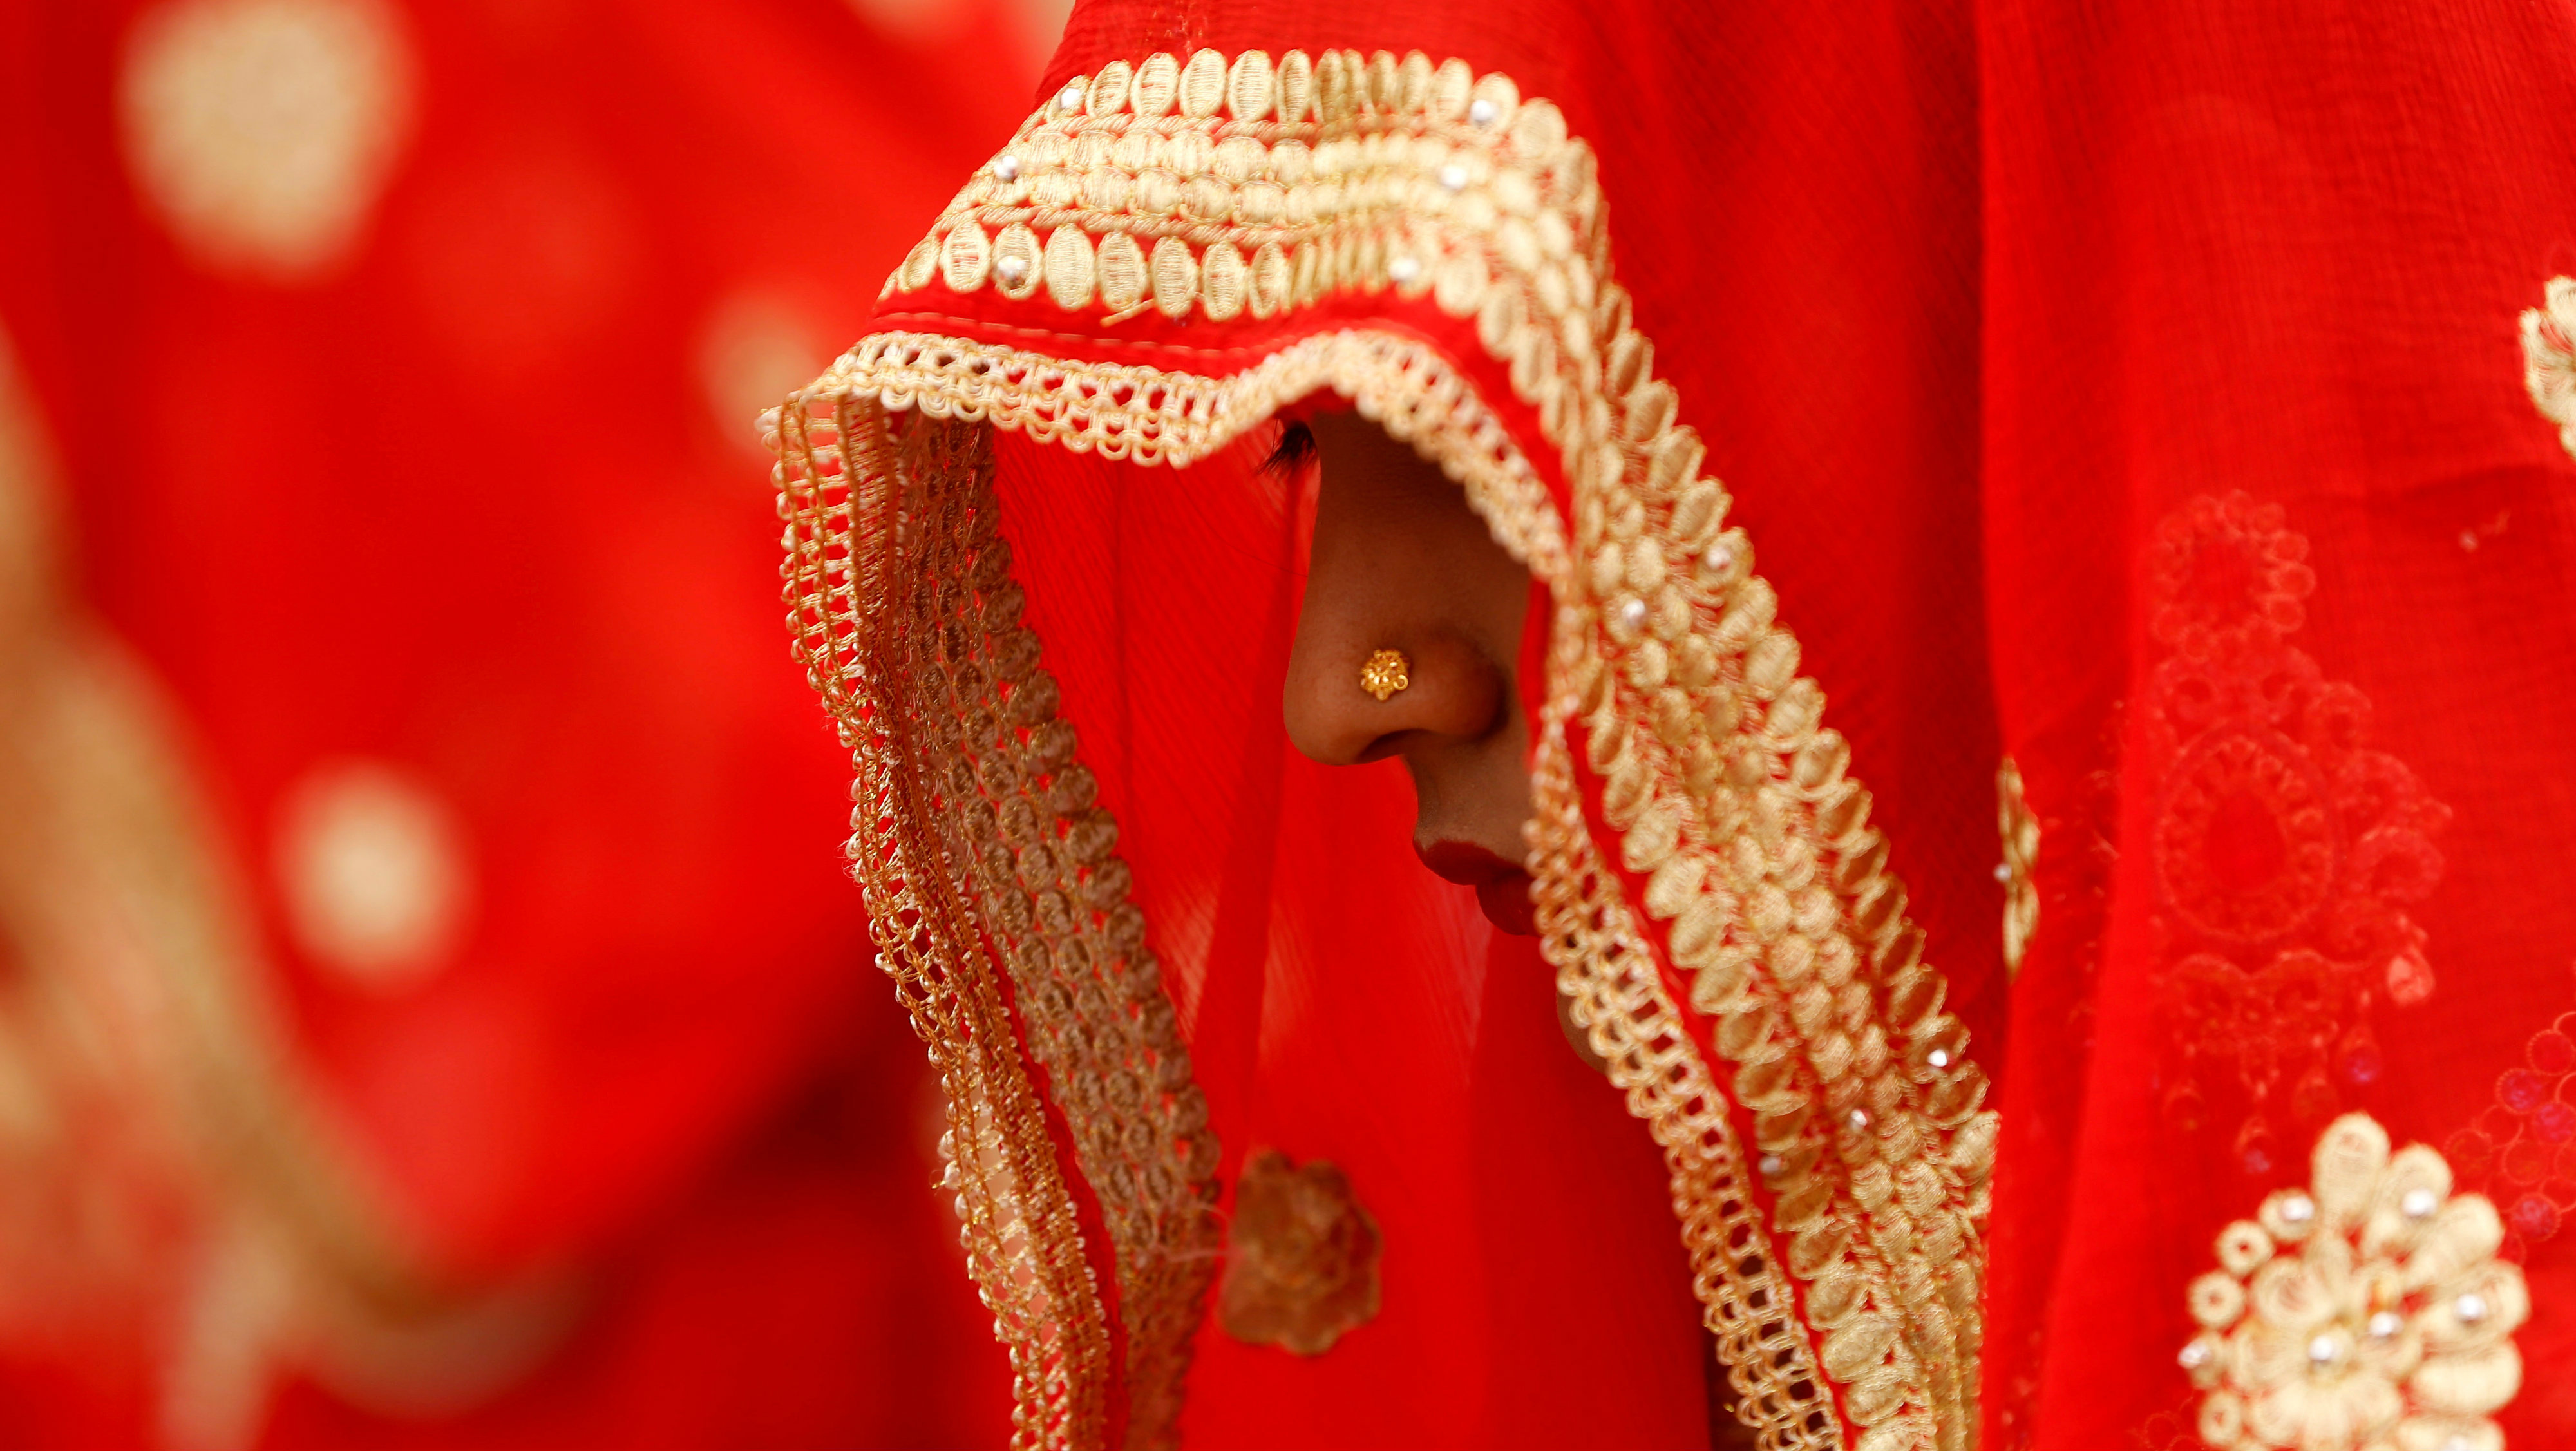 A bride waits to take her wedding vows during a Muslim marriage ceremony.